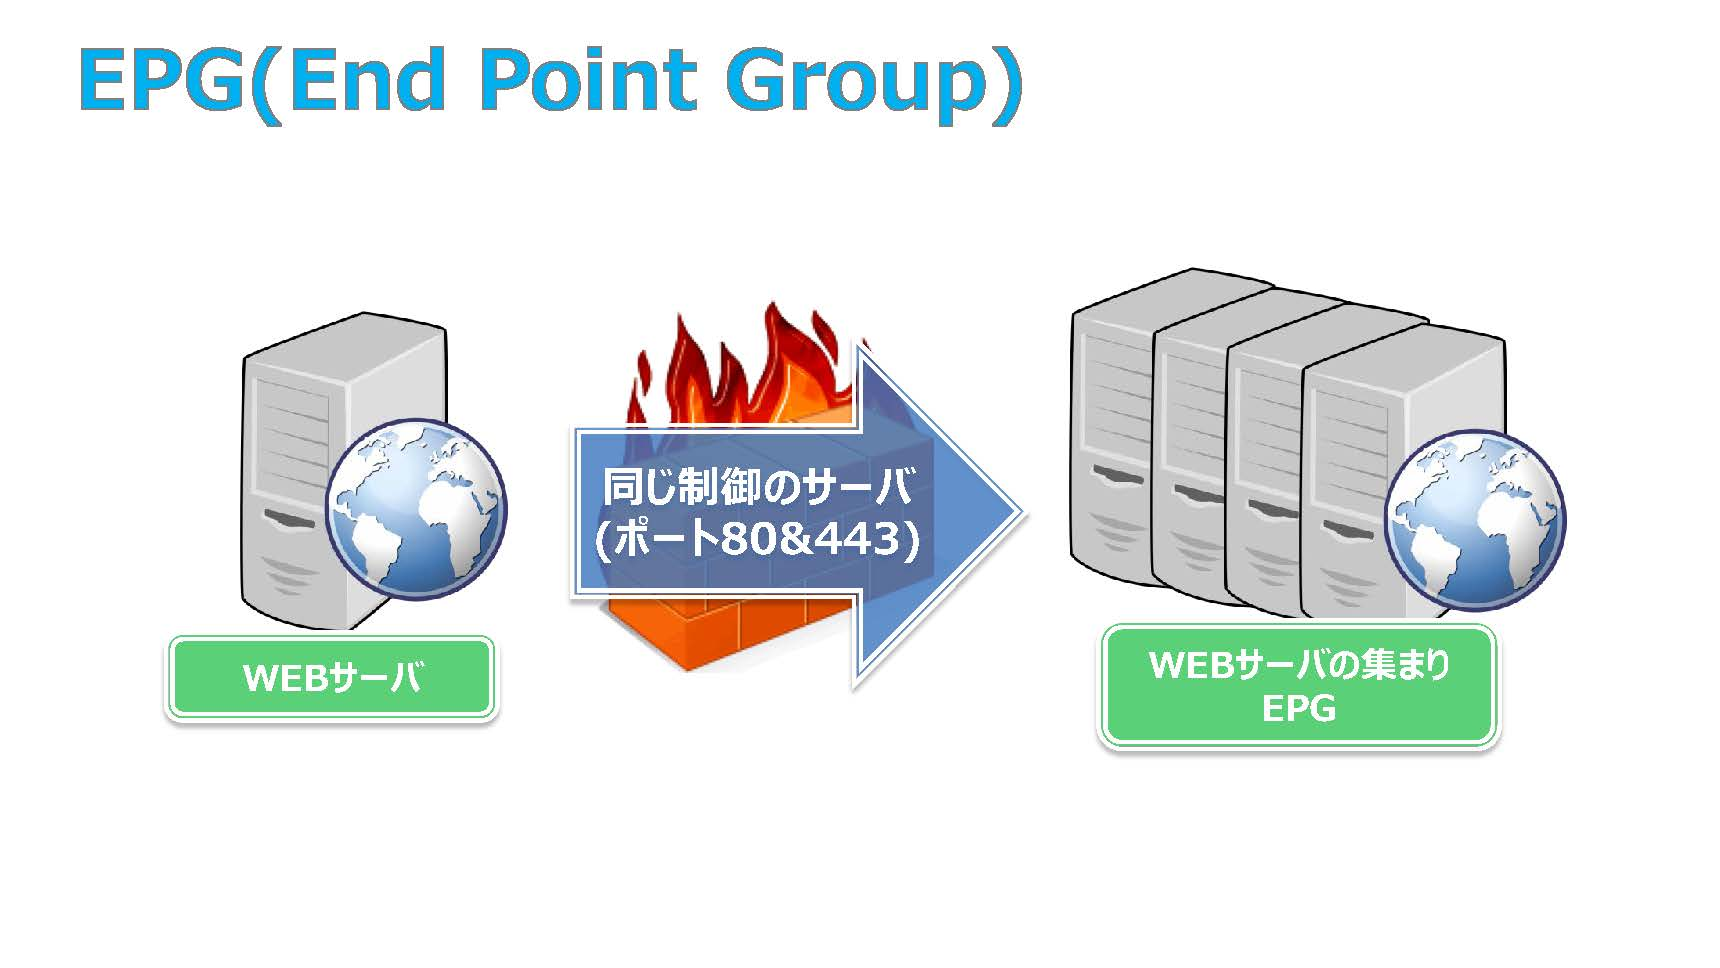 EPG(End Point Group)